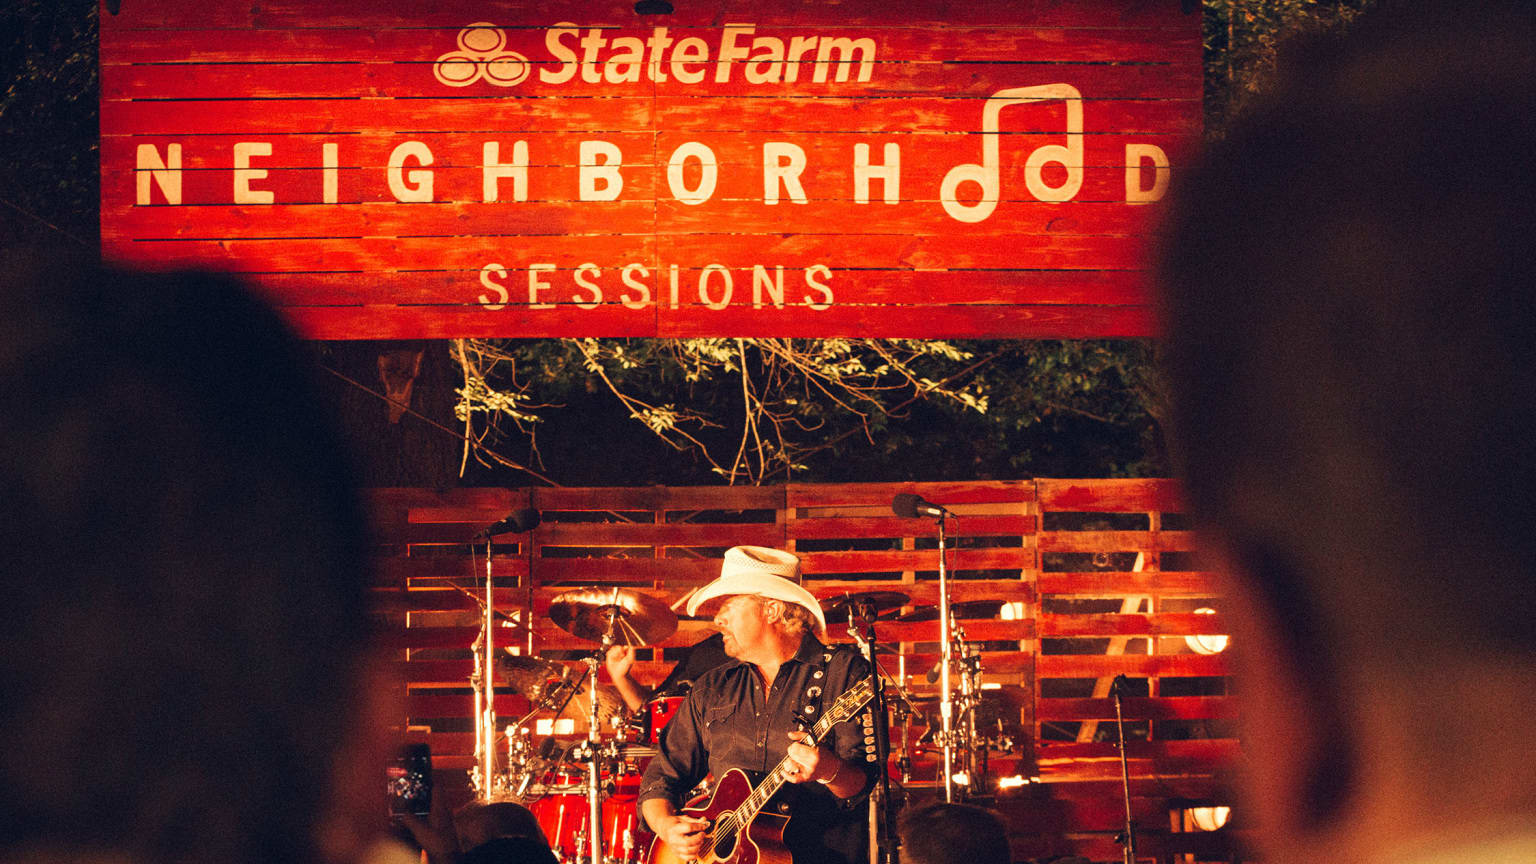 STATE FARM NEIGHBORHOOD SESSIONS - TOBY KEITH